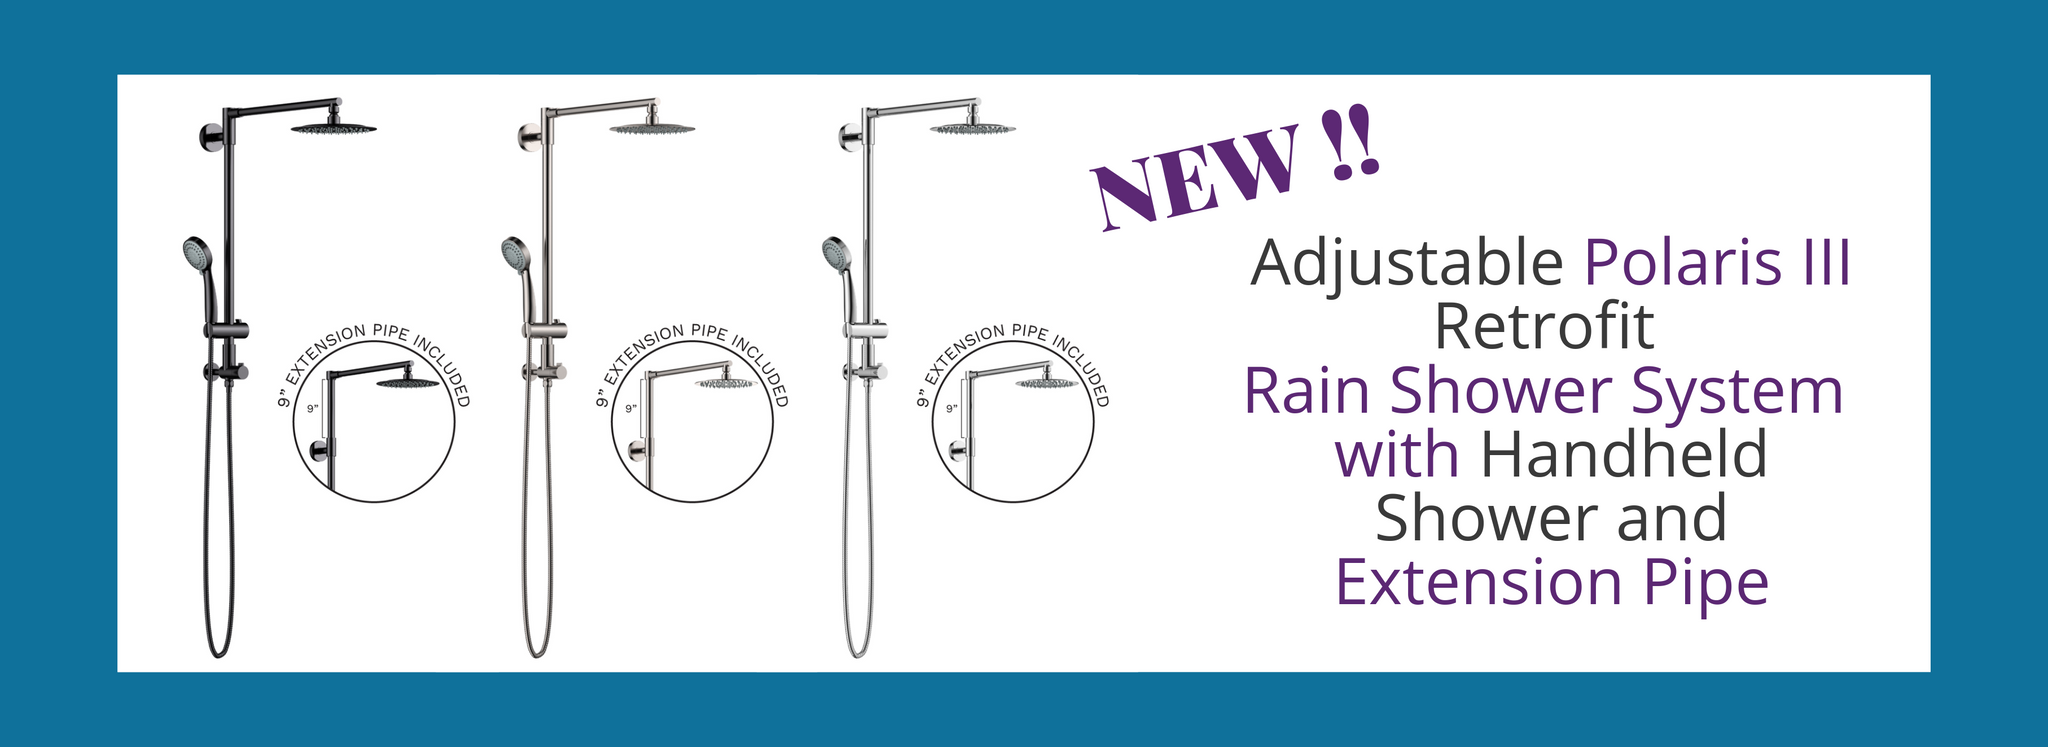 New Polaris III Retrofit Rain Shower System with Handheld shower and extension Pipe